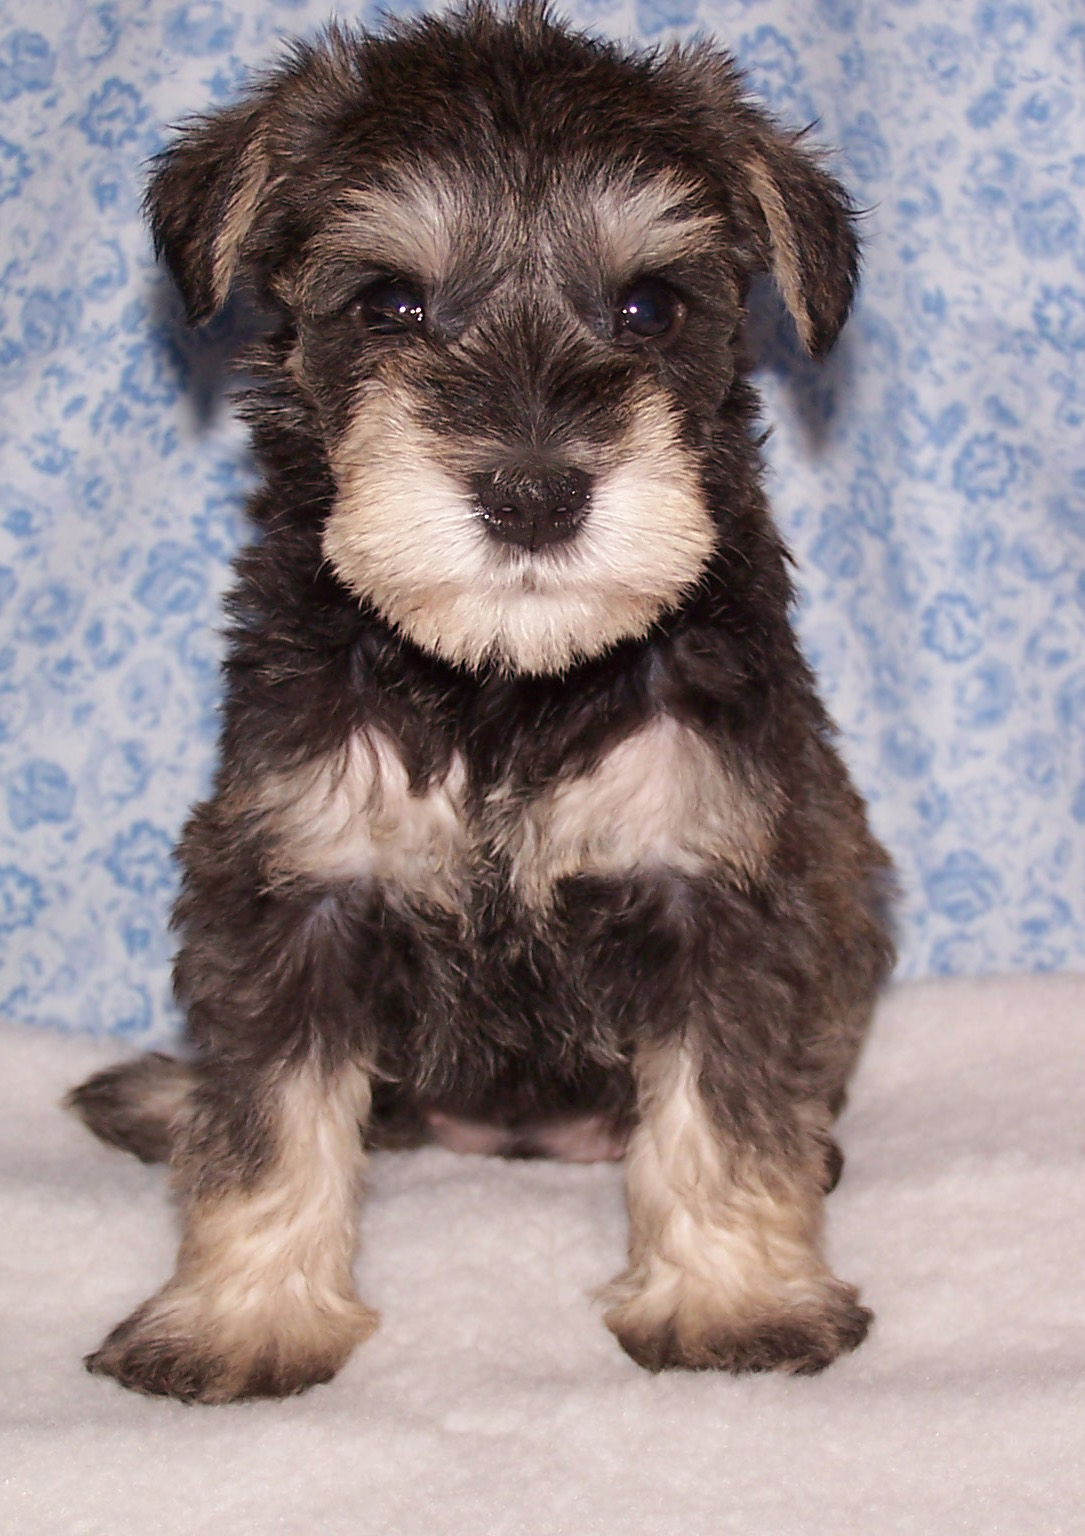 Schnauzer puppy - Little Missy